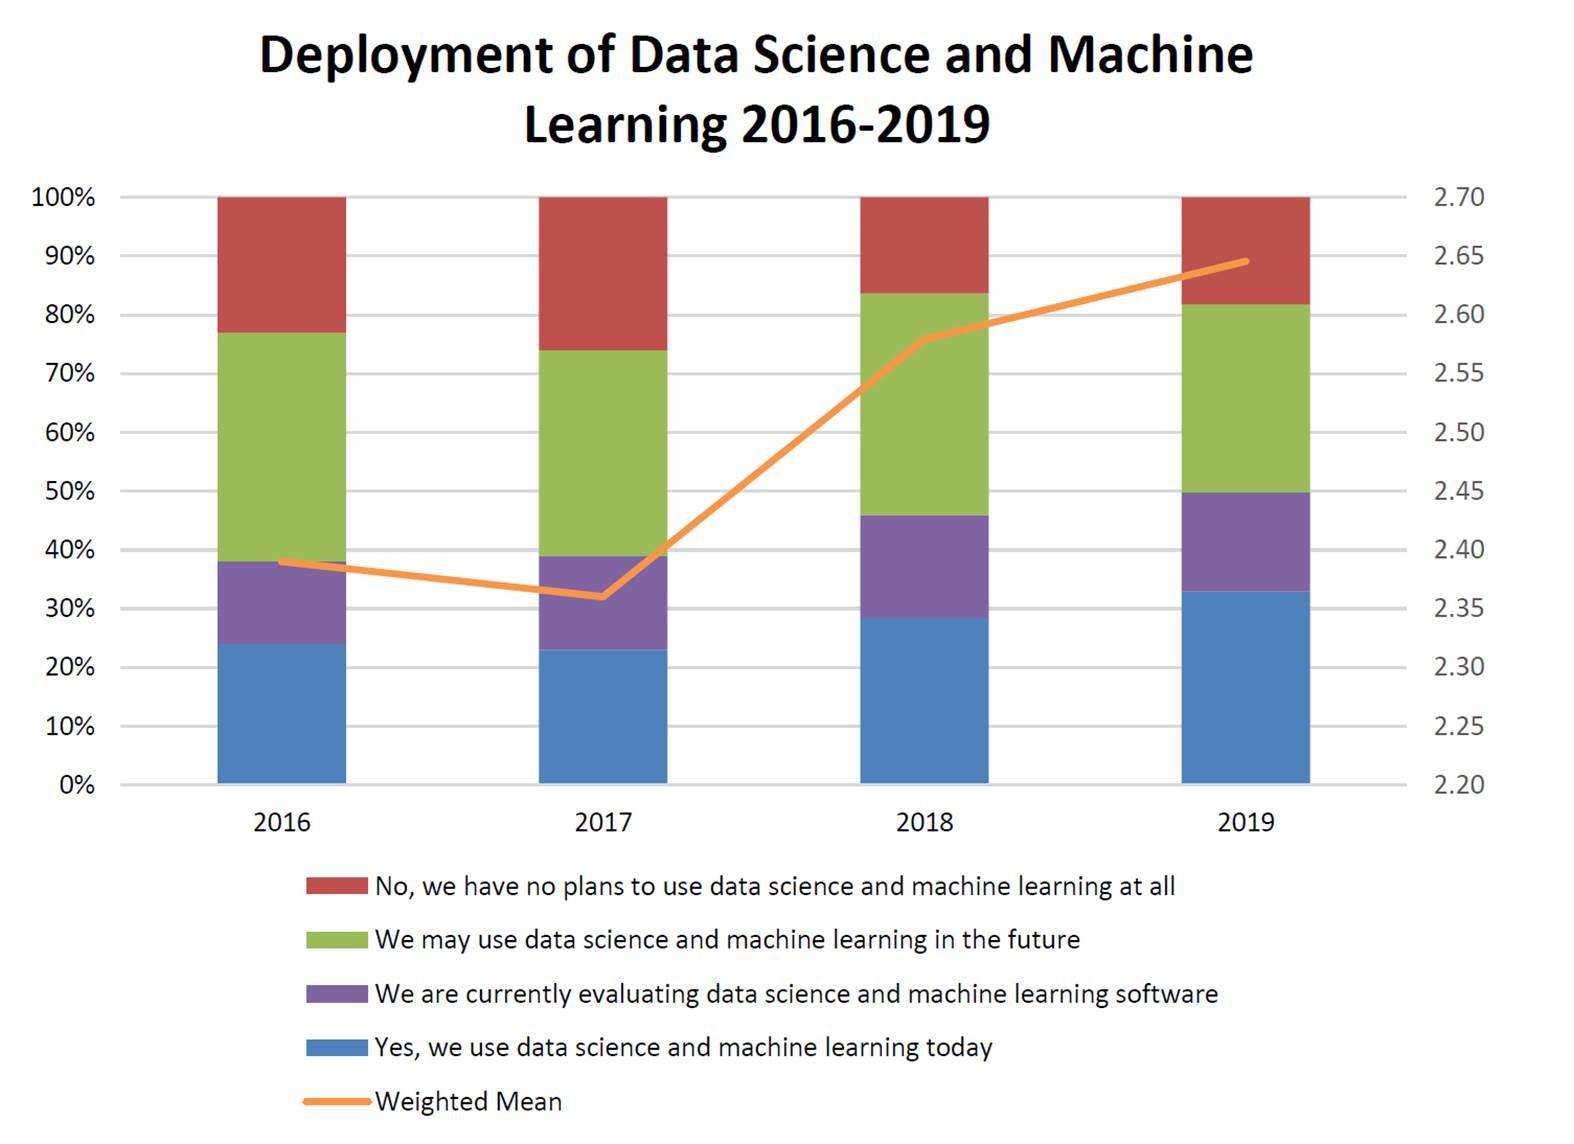 Deployment of Data Science and Machine Learning 2016-2019